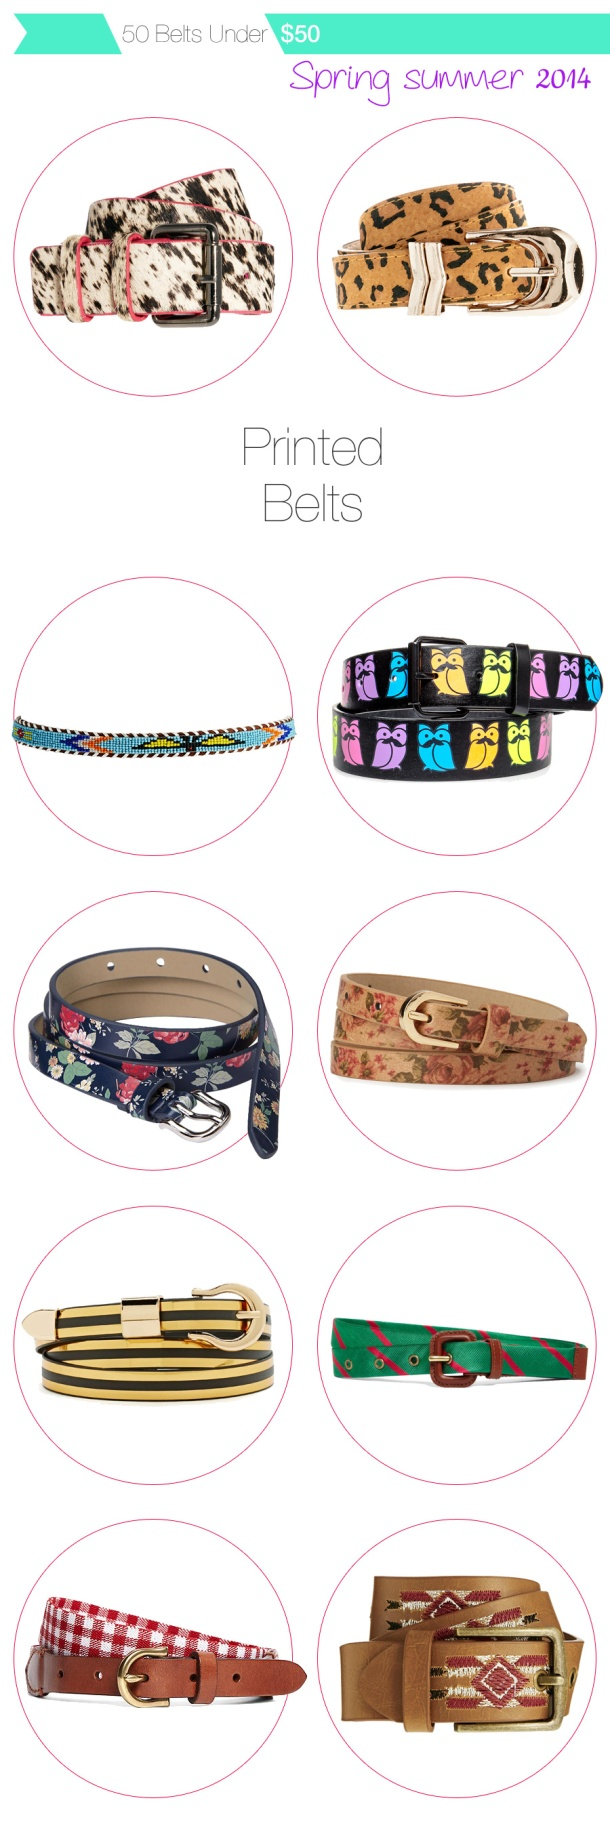 50-belts-under-$50-spring-summer-2014-printed-belts